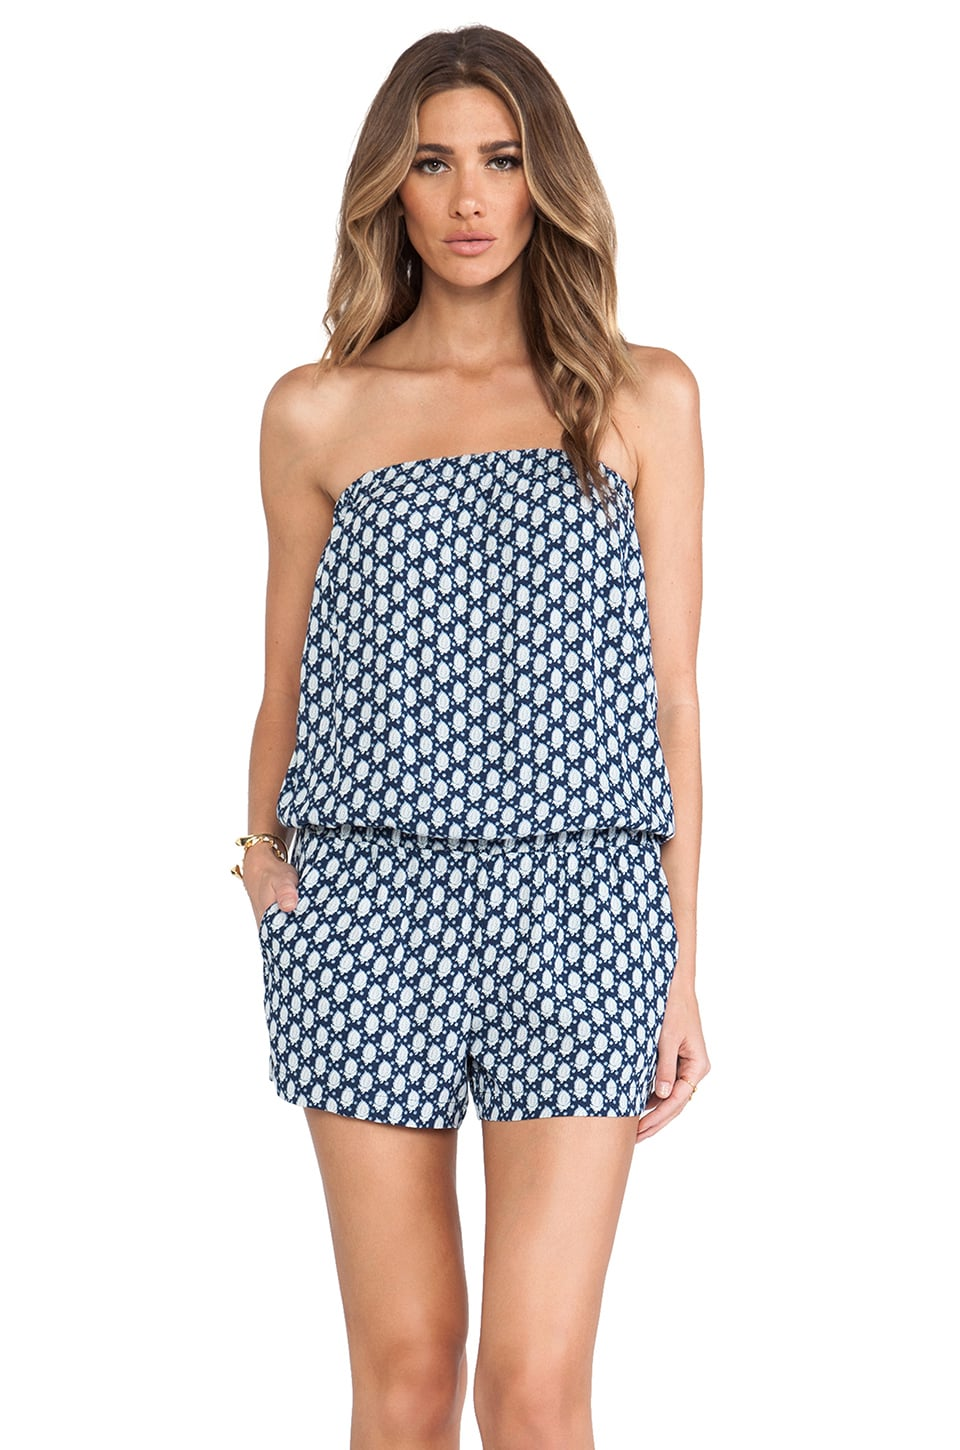 Soft Joie Gidget Romper in Indigo Blue